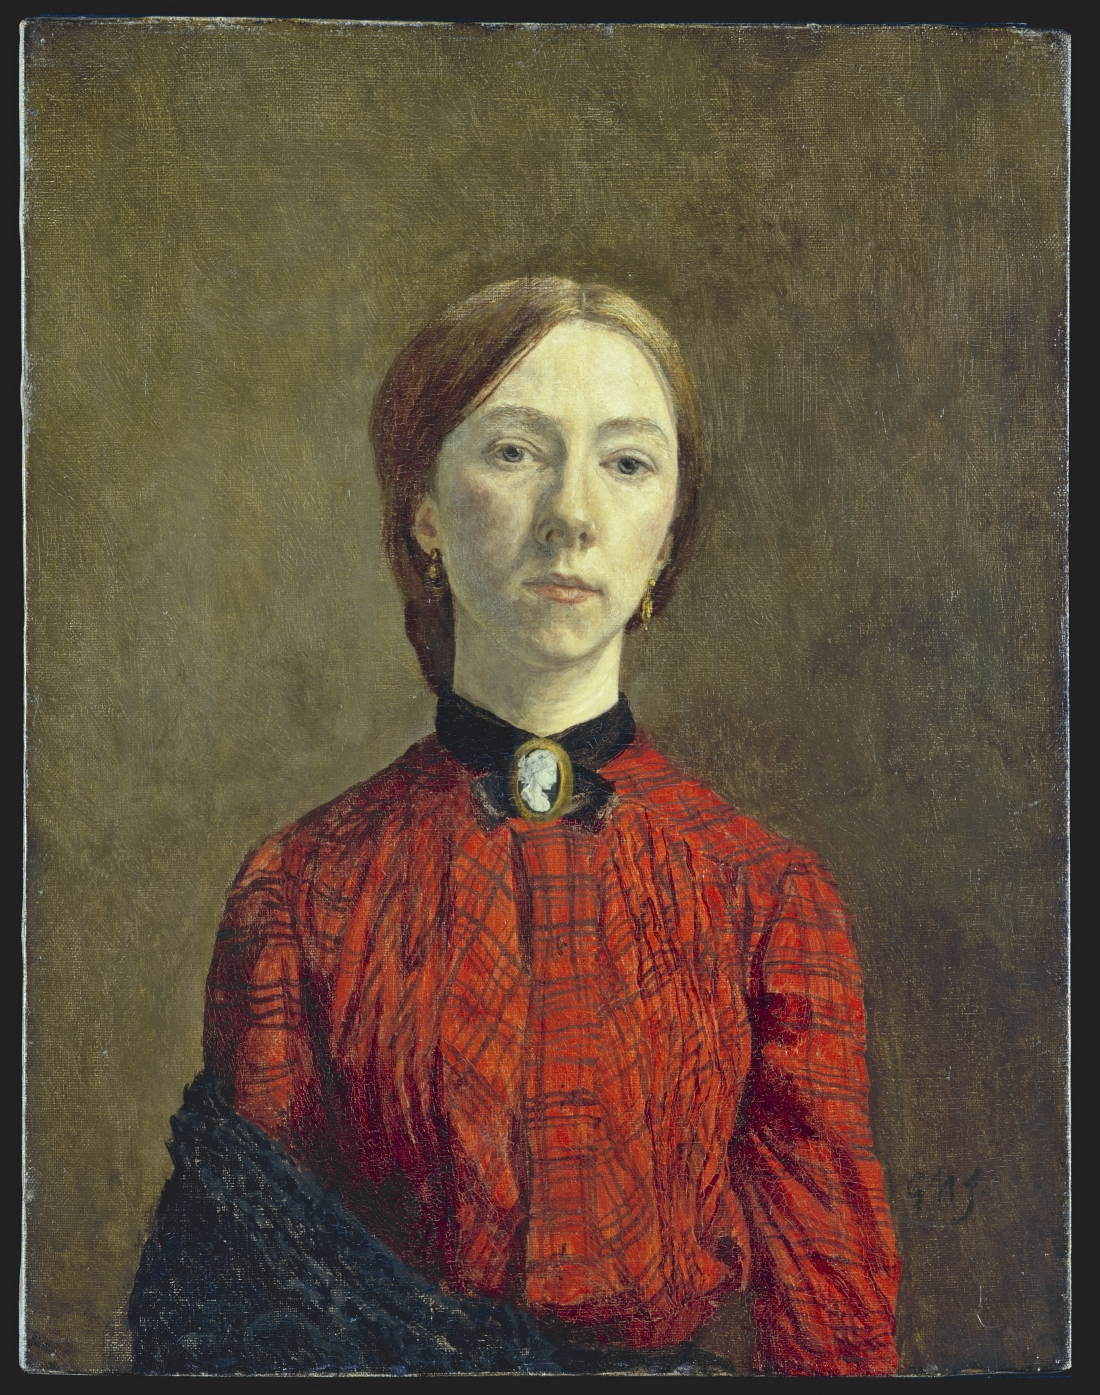 Gwen John, Self-portrait, 1902, oil on canvas Tate. Purchased 1942 © Tate, London 2018